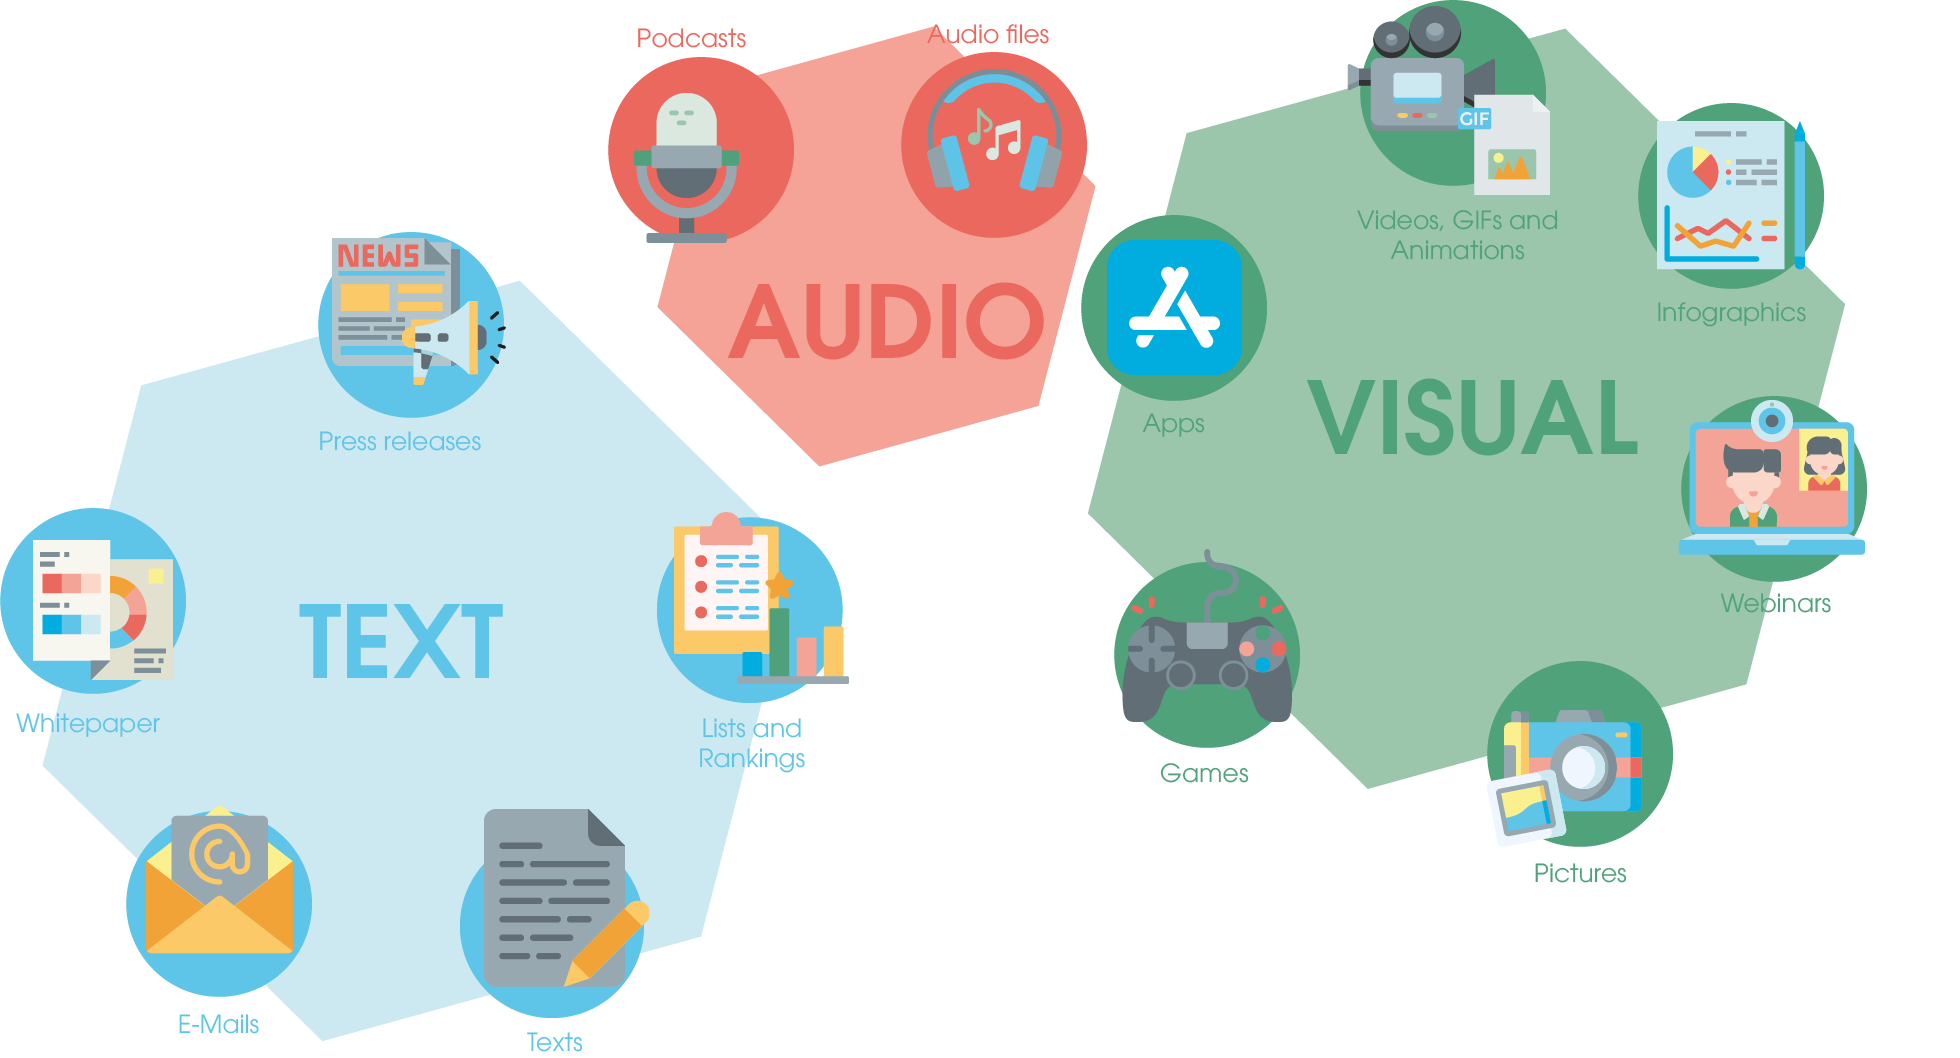 Possible classification of content types into text, audio and visual content